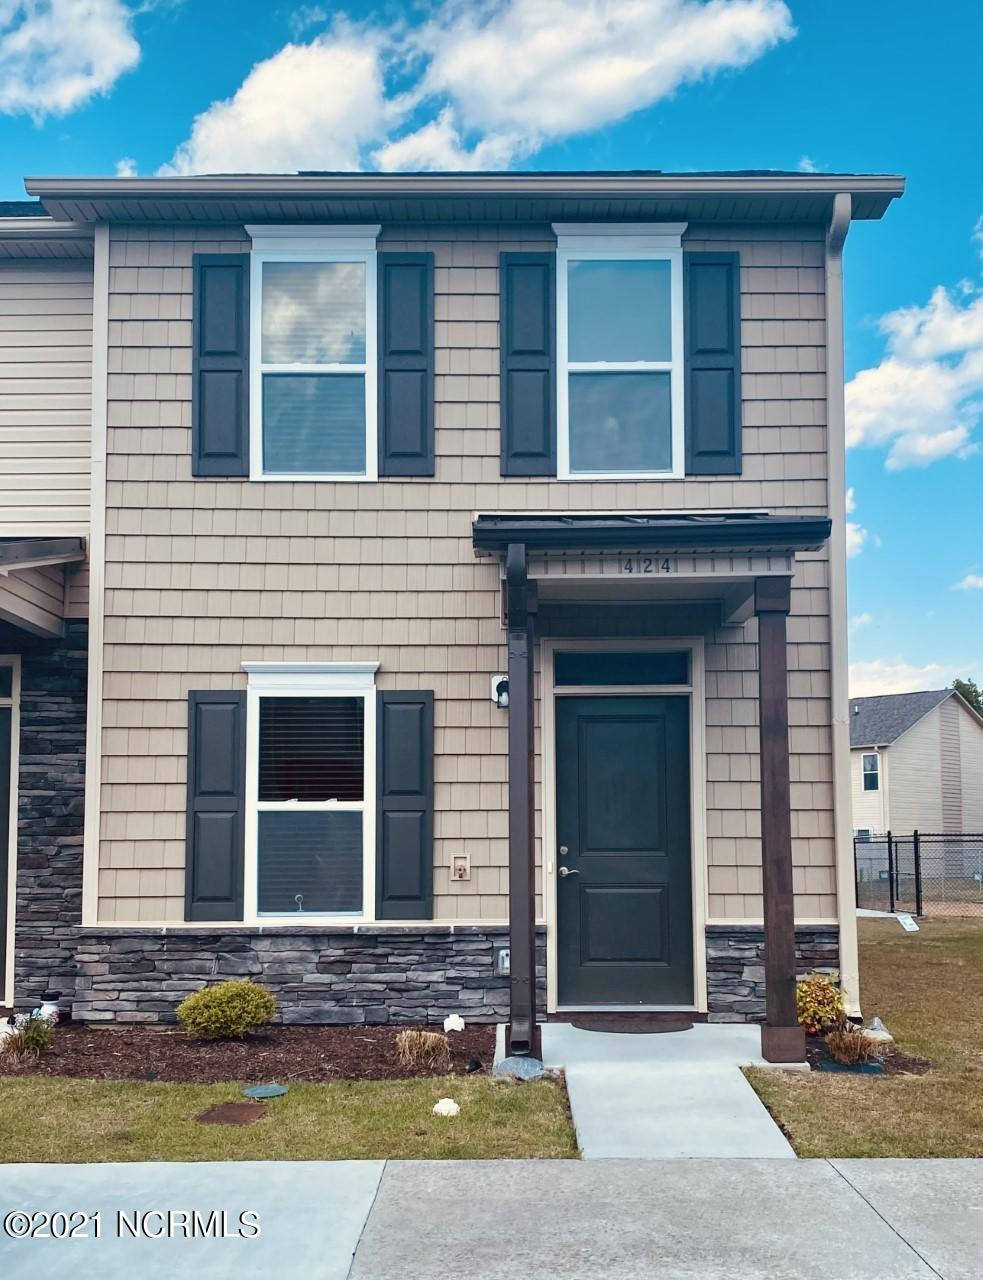 Nearly New Townhome with LVP flooring in the Living, dining, Kitchen and 1/2 bath. The floor plan includes 2 bedrooms upstairs with full bathroom and hall laundry closet. Enjoy the privacy of your vinyl fenced backyard for grilling and relaxing.  Dog park located near by.